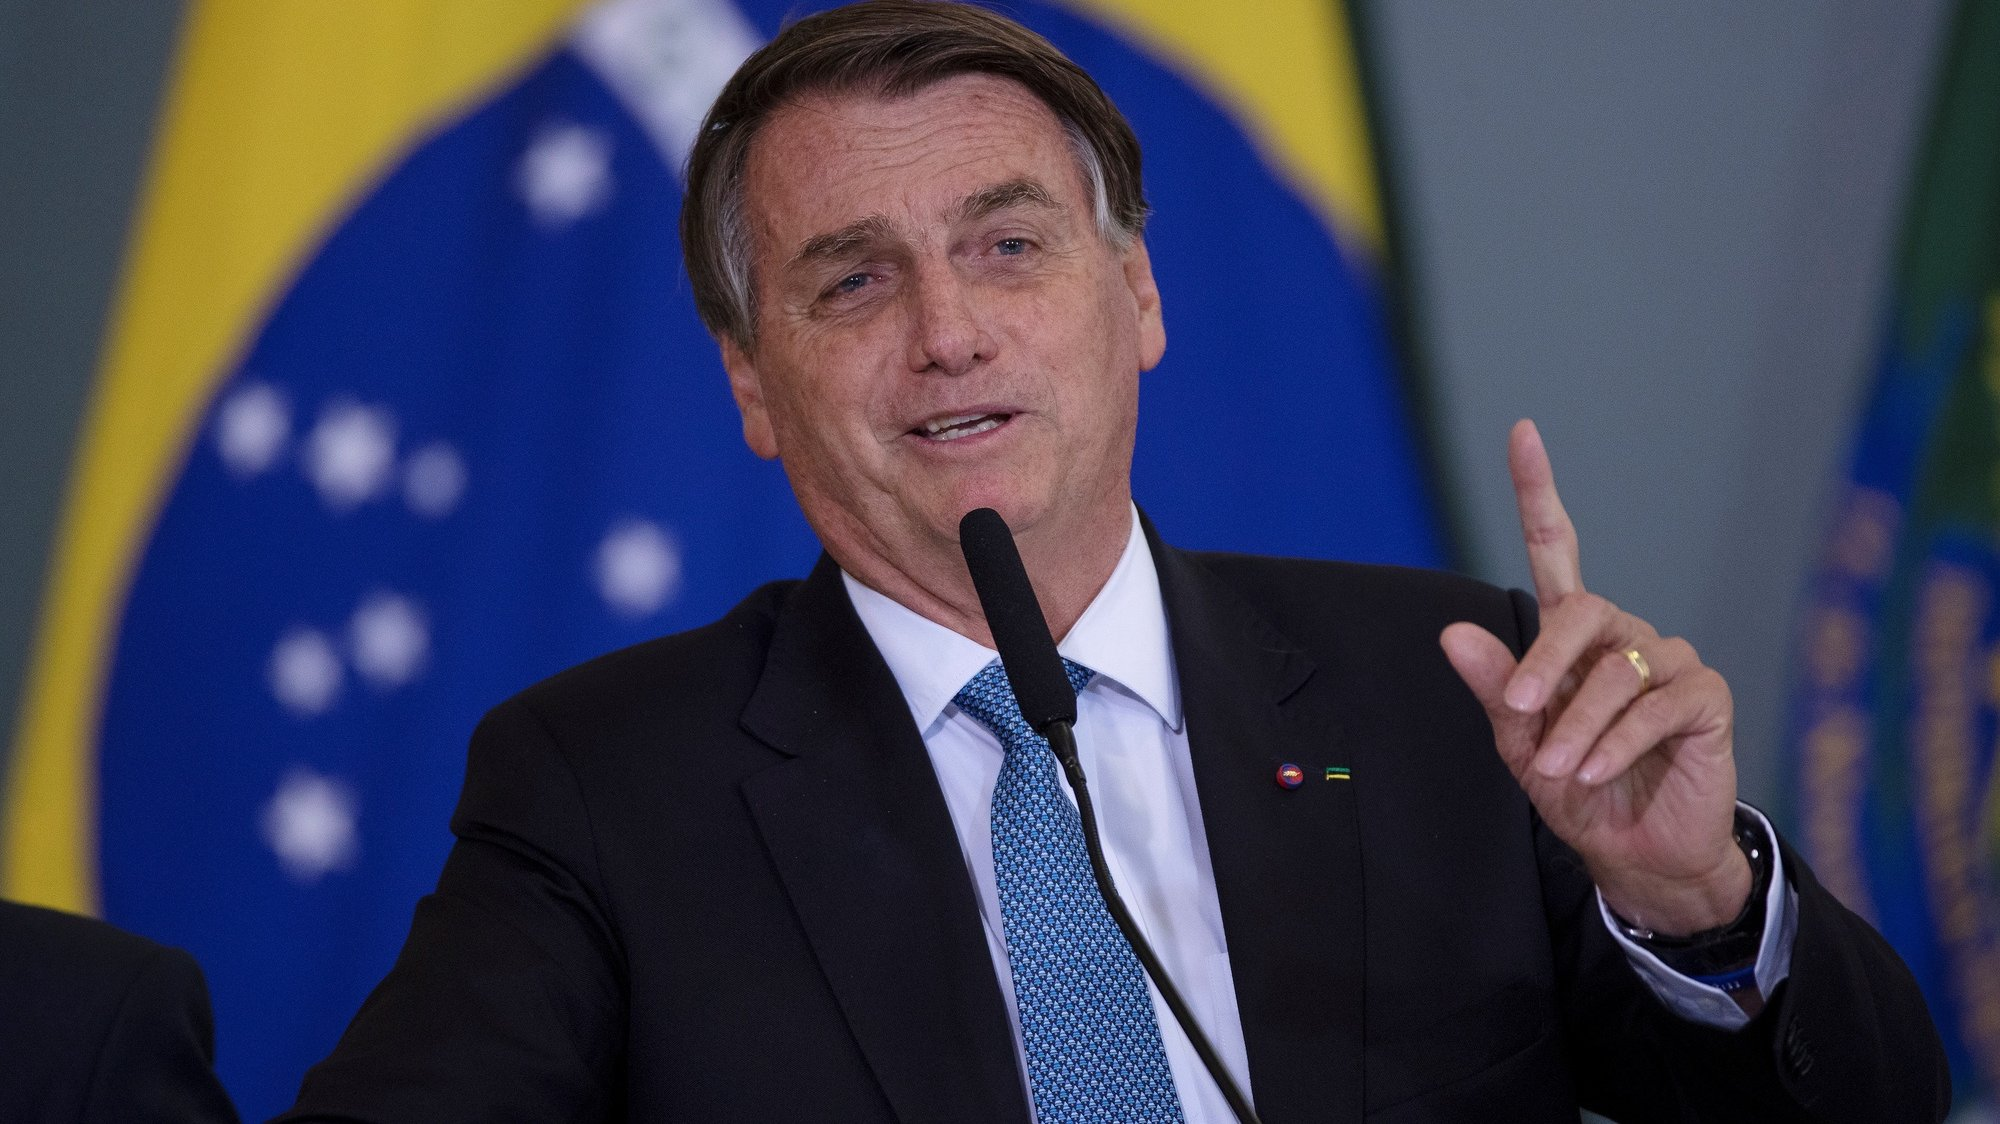 epa09512183 Brazilian President Jair Bolsonaro participates in a ceremony of Modernization of the Standards of Safety and Health at Work at the Palacio do Planalto in Brasilia, Brazil, 07 October 2021. The Senate commission investigating the Brazilian government's management of covid-19 extended its interrogations on 07 October due to new suspicions that President Jair Bolsonaro is still pressing for ineffective remedies.  EPA/JOEDSON ALVES